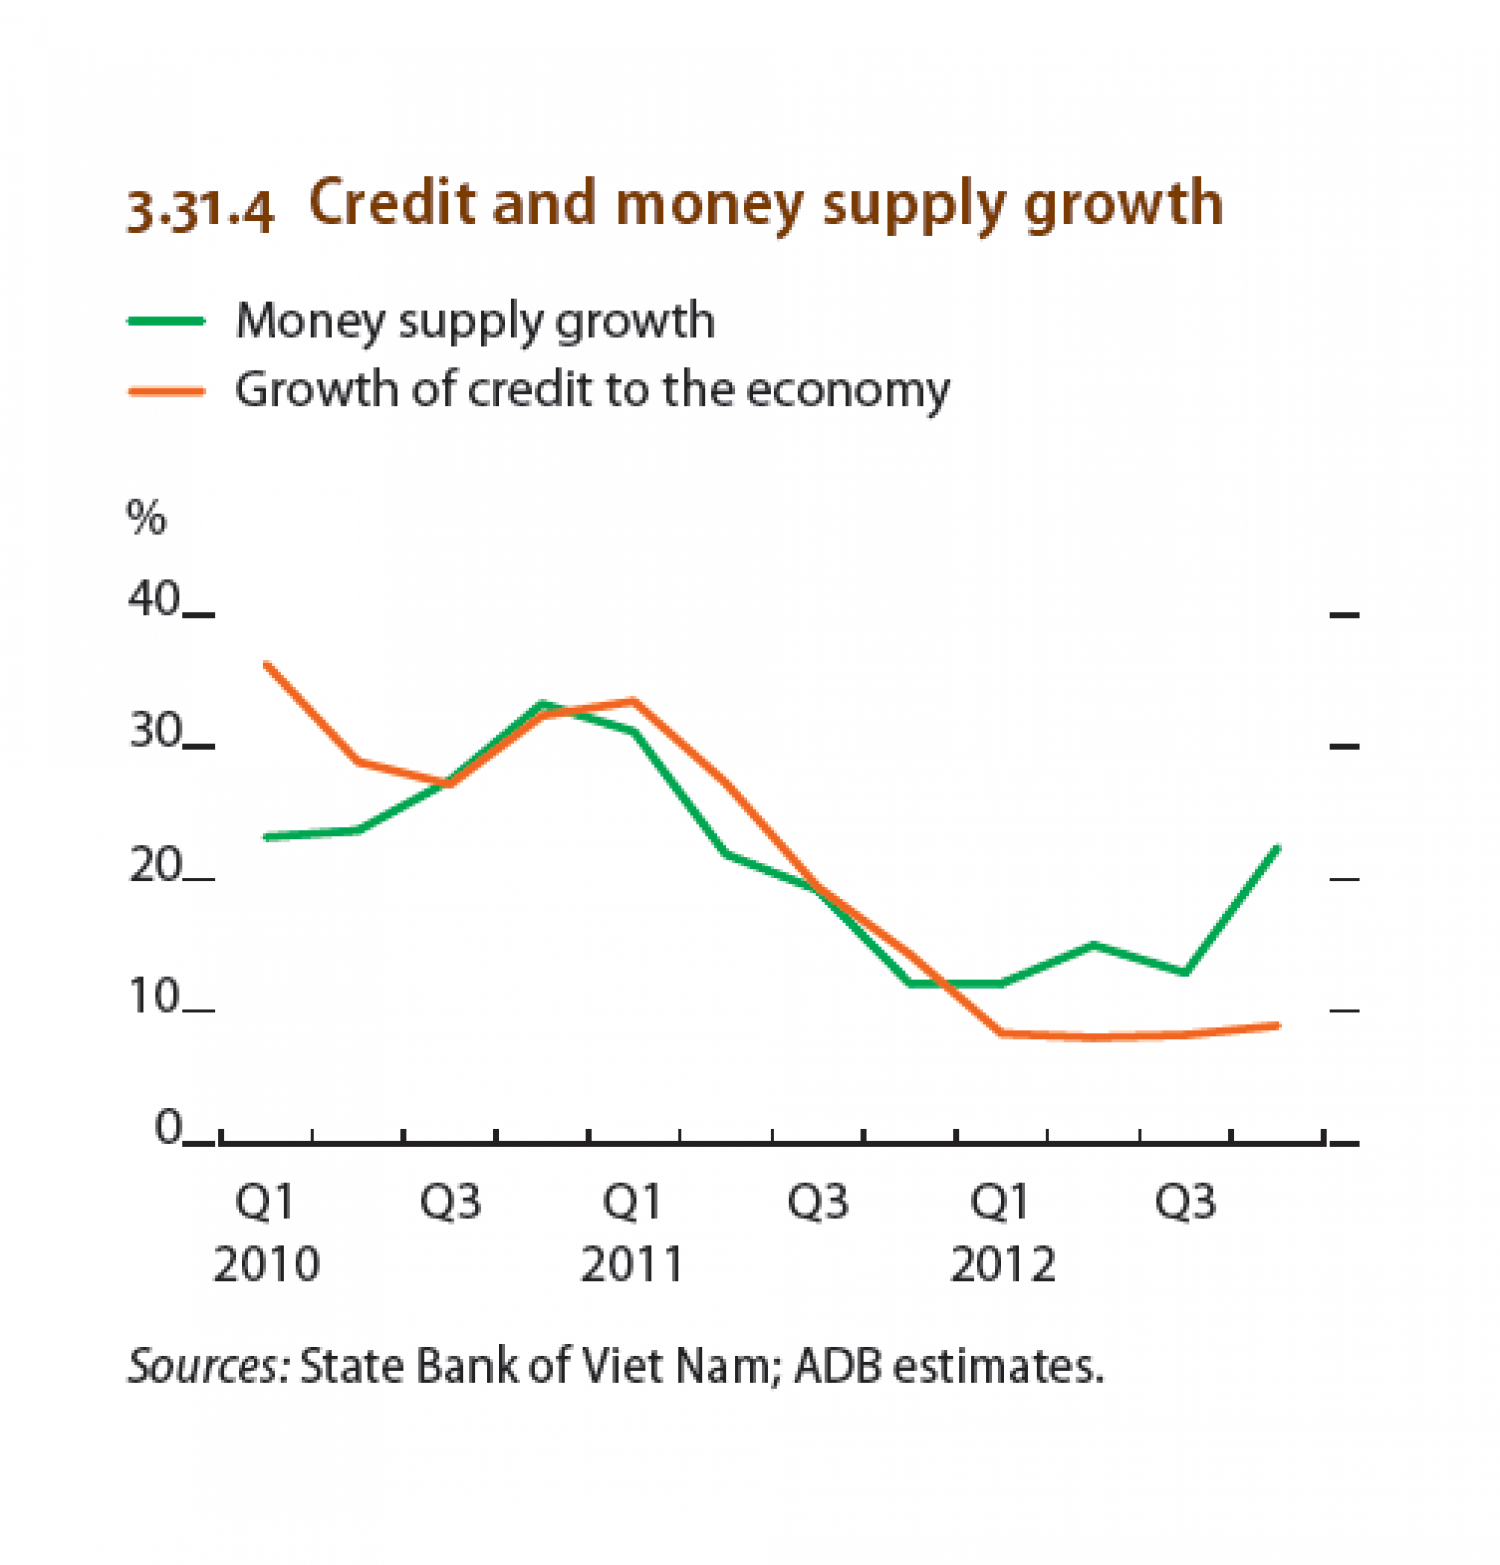 Viet nam : Credit and money supply growth Infographic